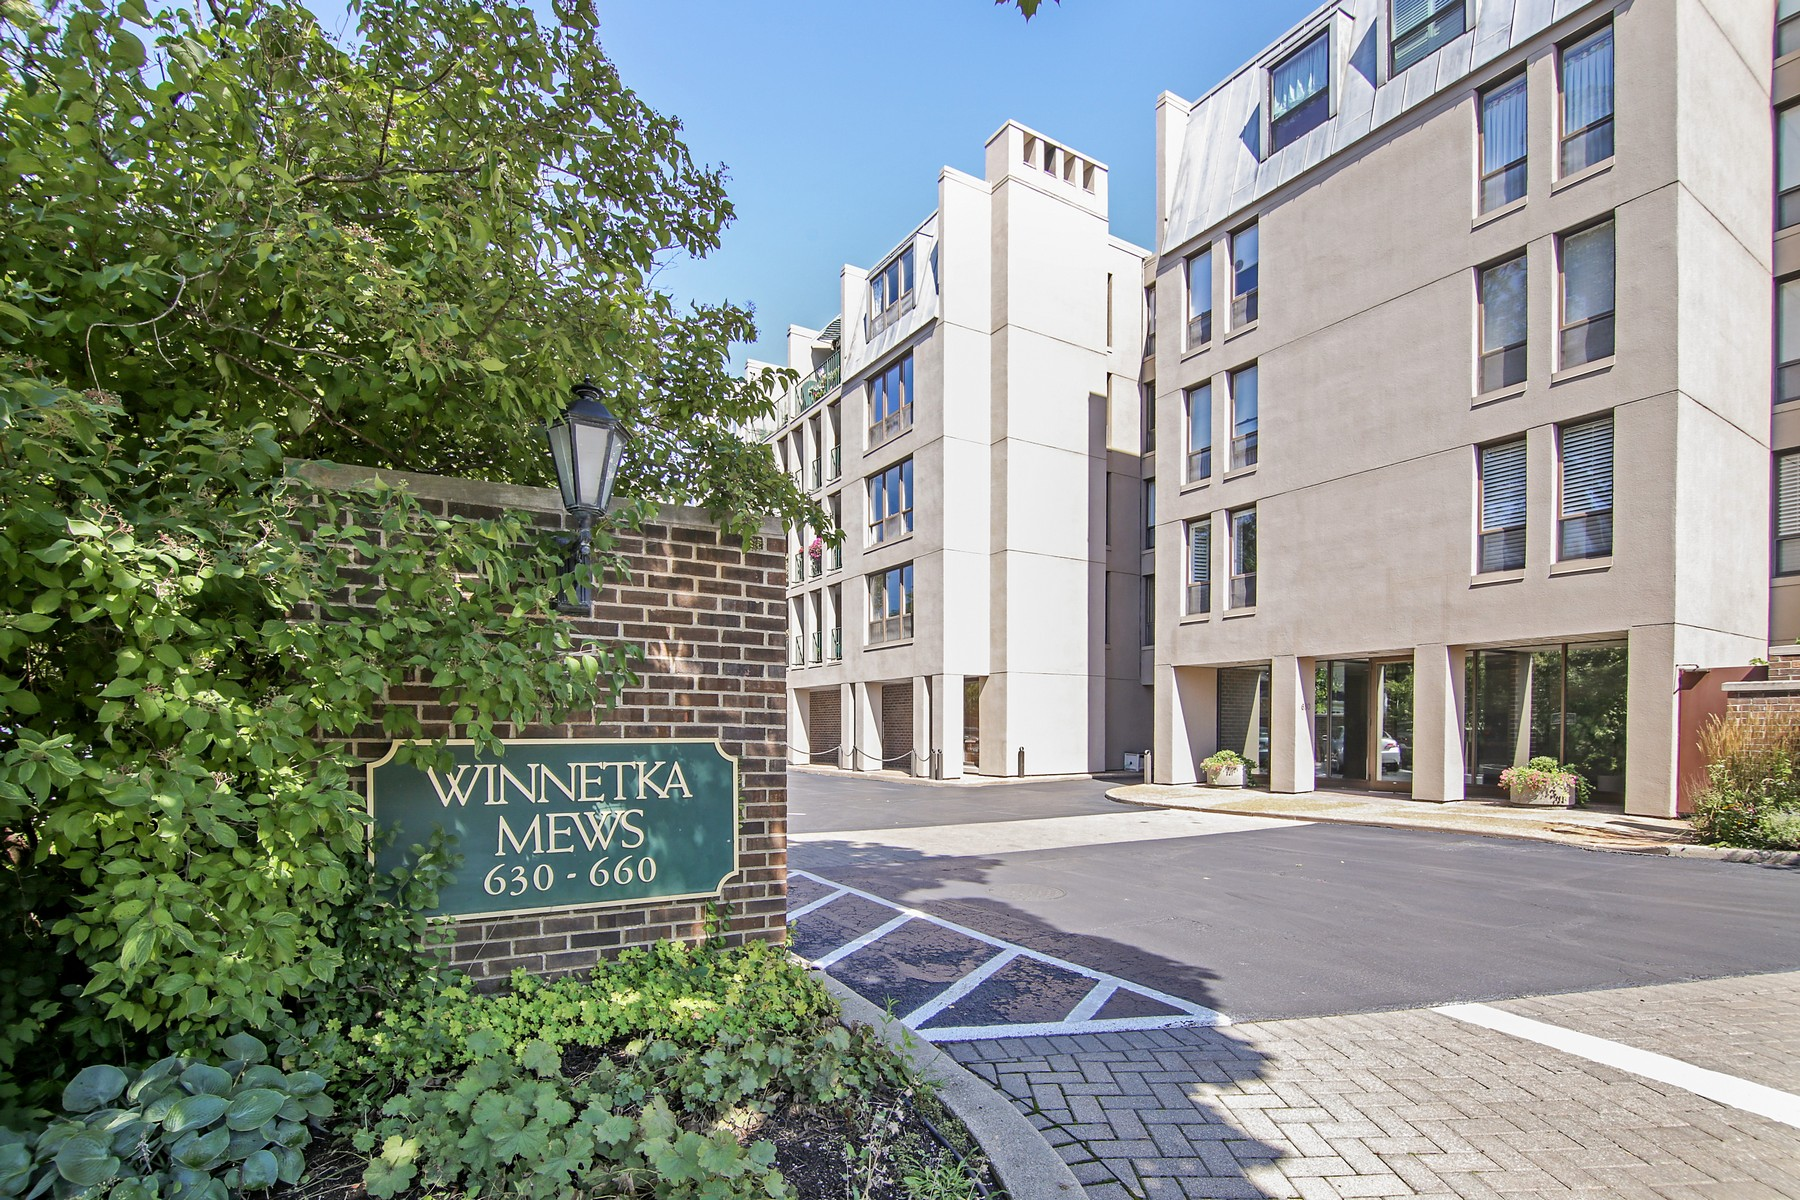 Property For Sale at Desirable Winnetka Mews Condominium On First Floor